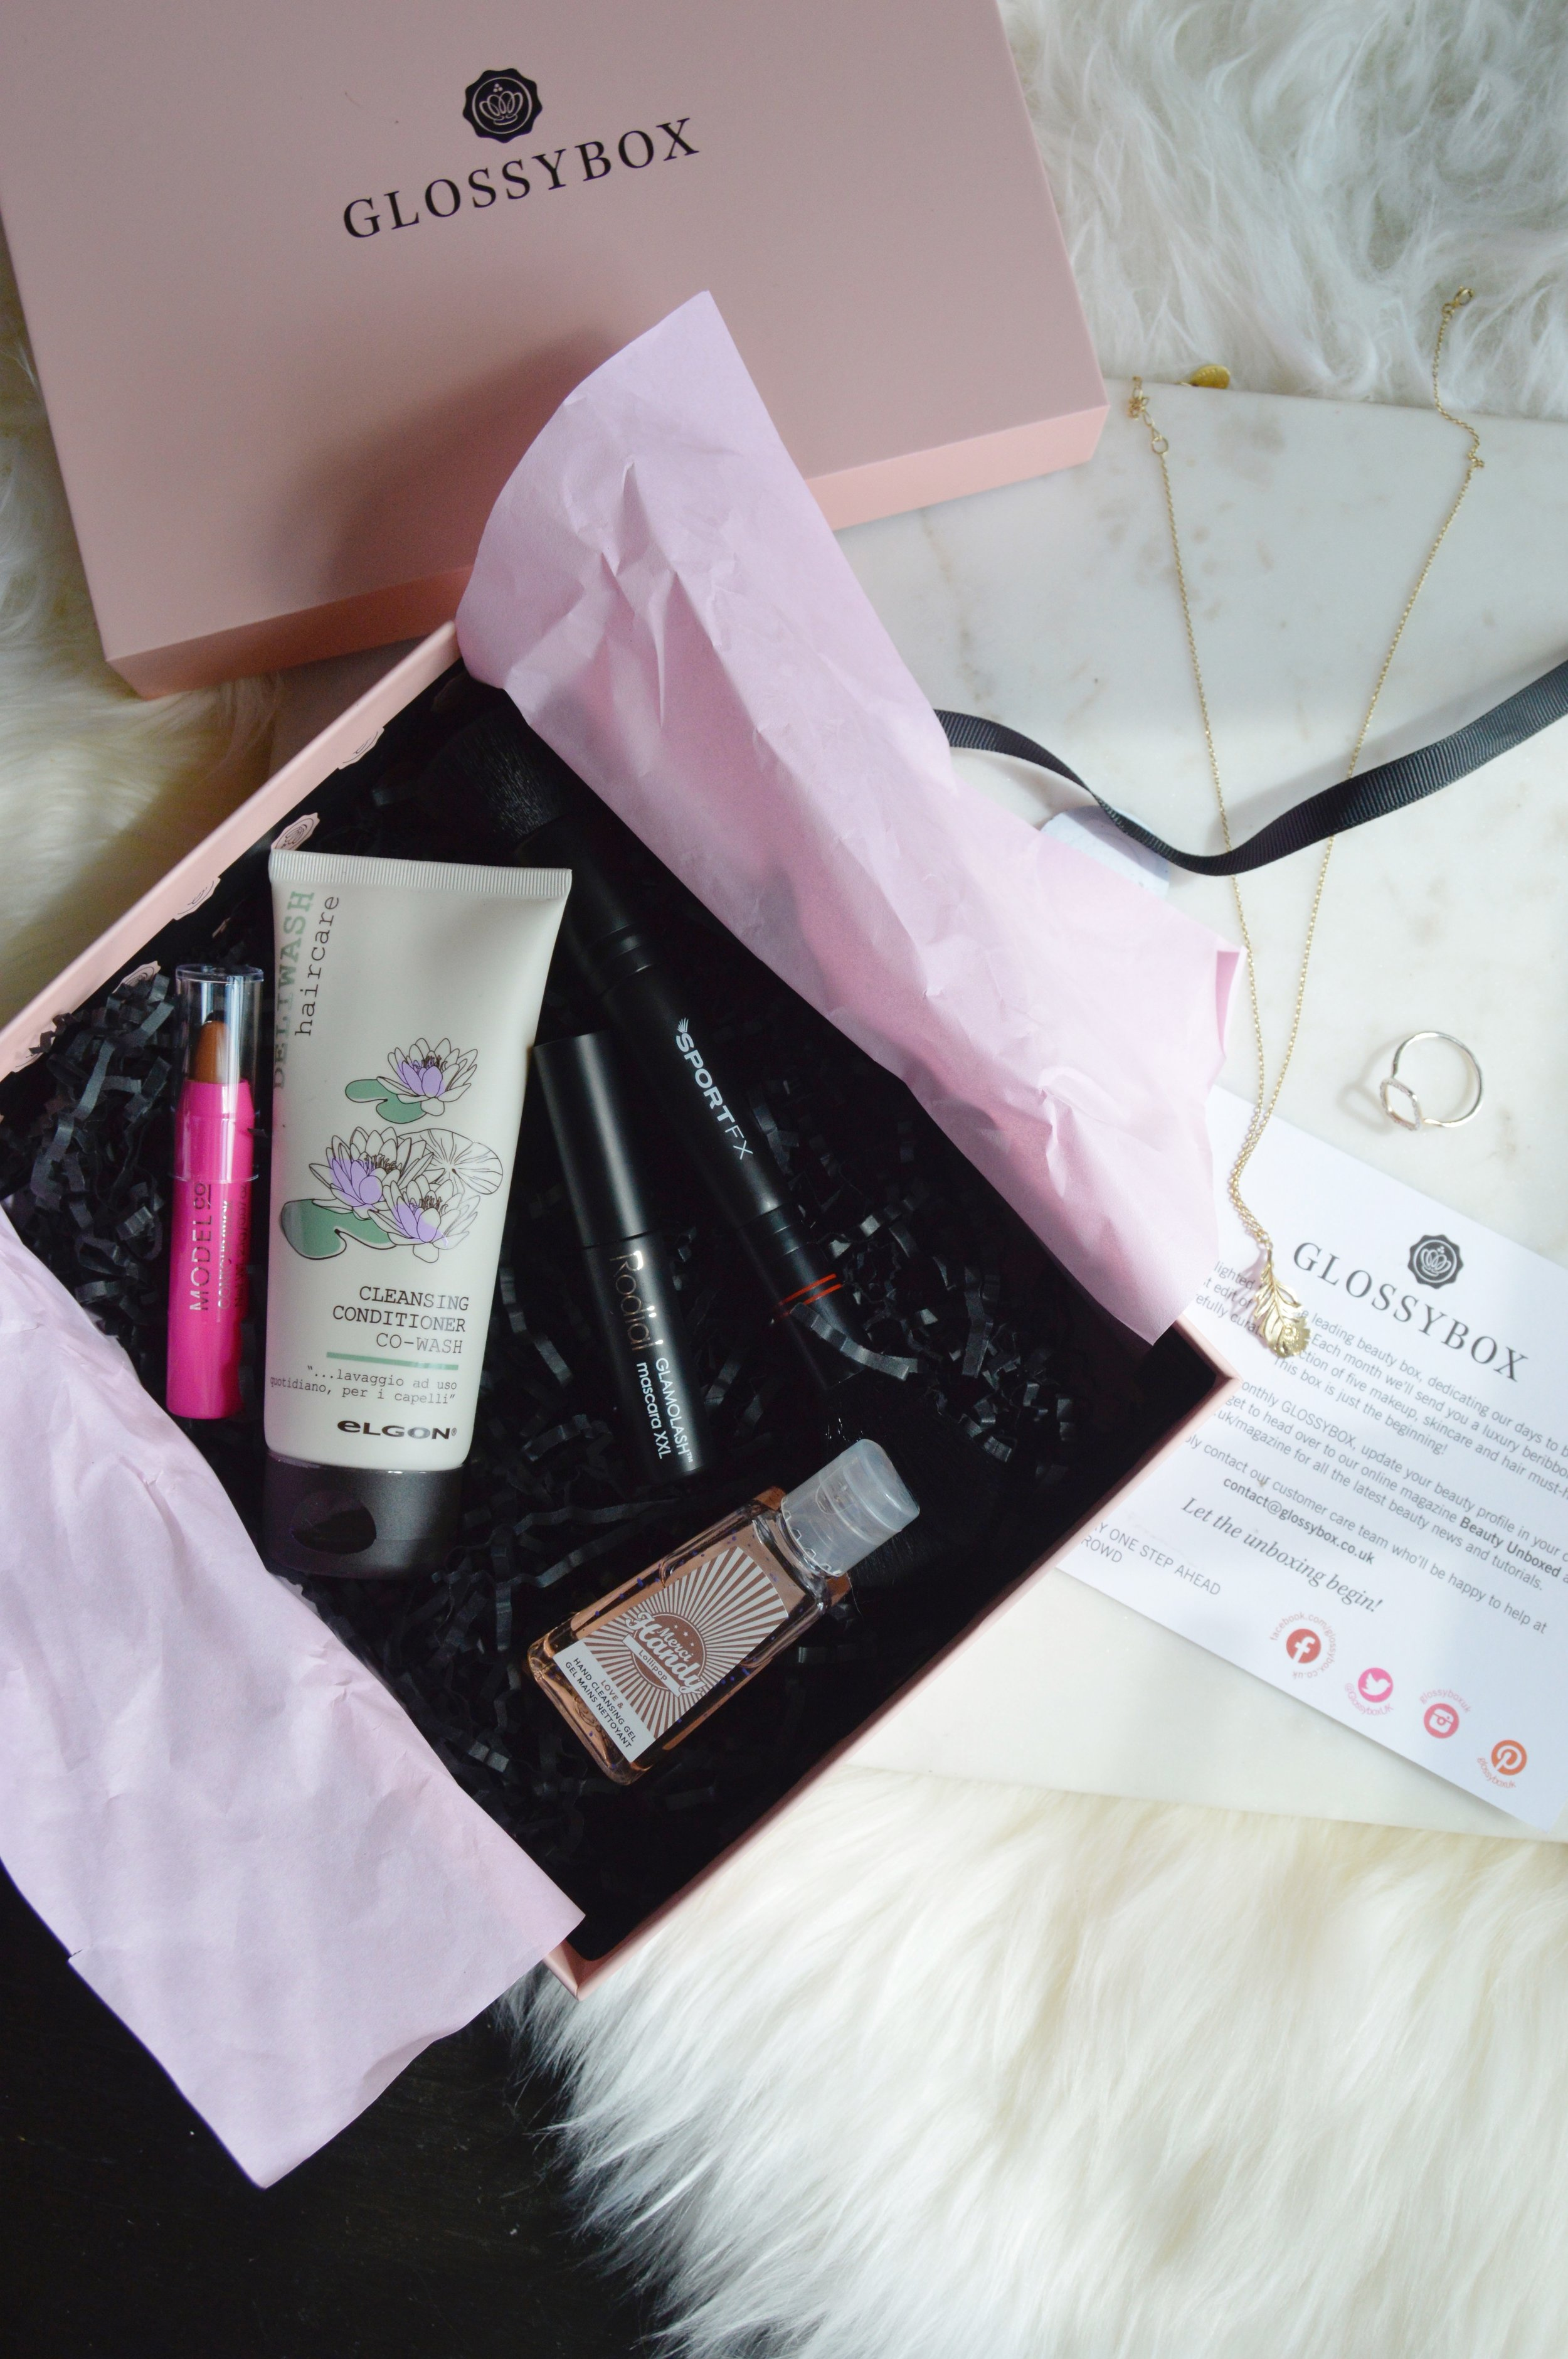 Glossybox April Review, The Creative Larder